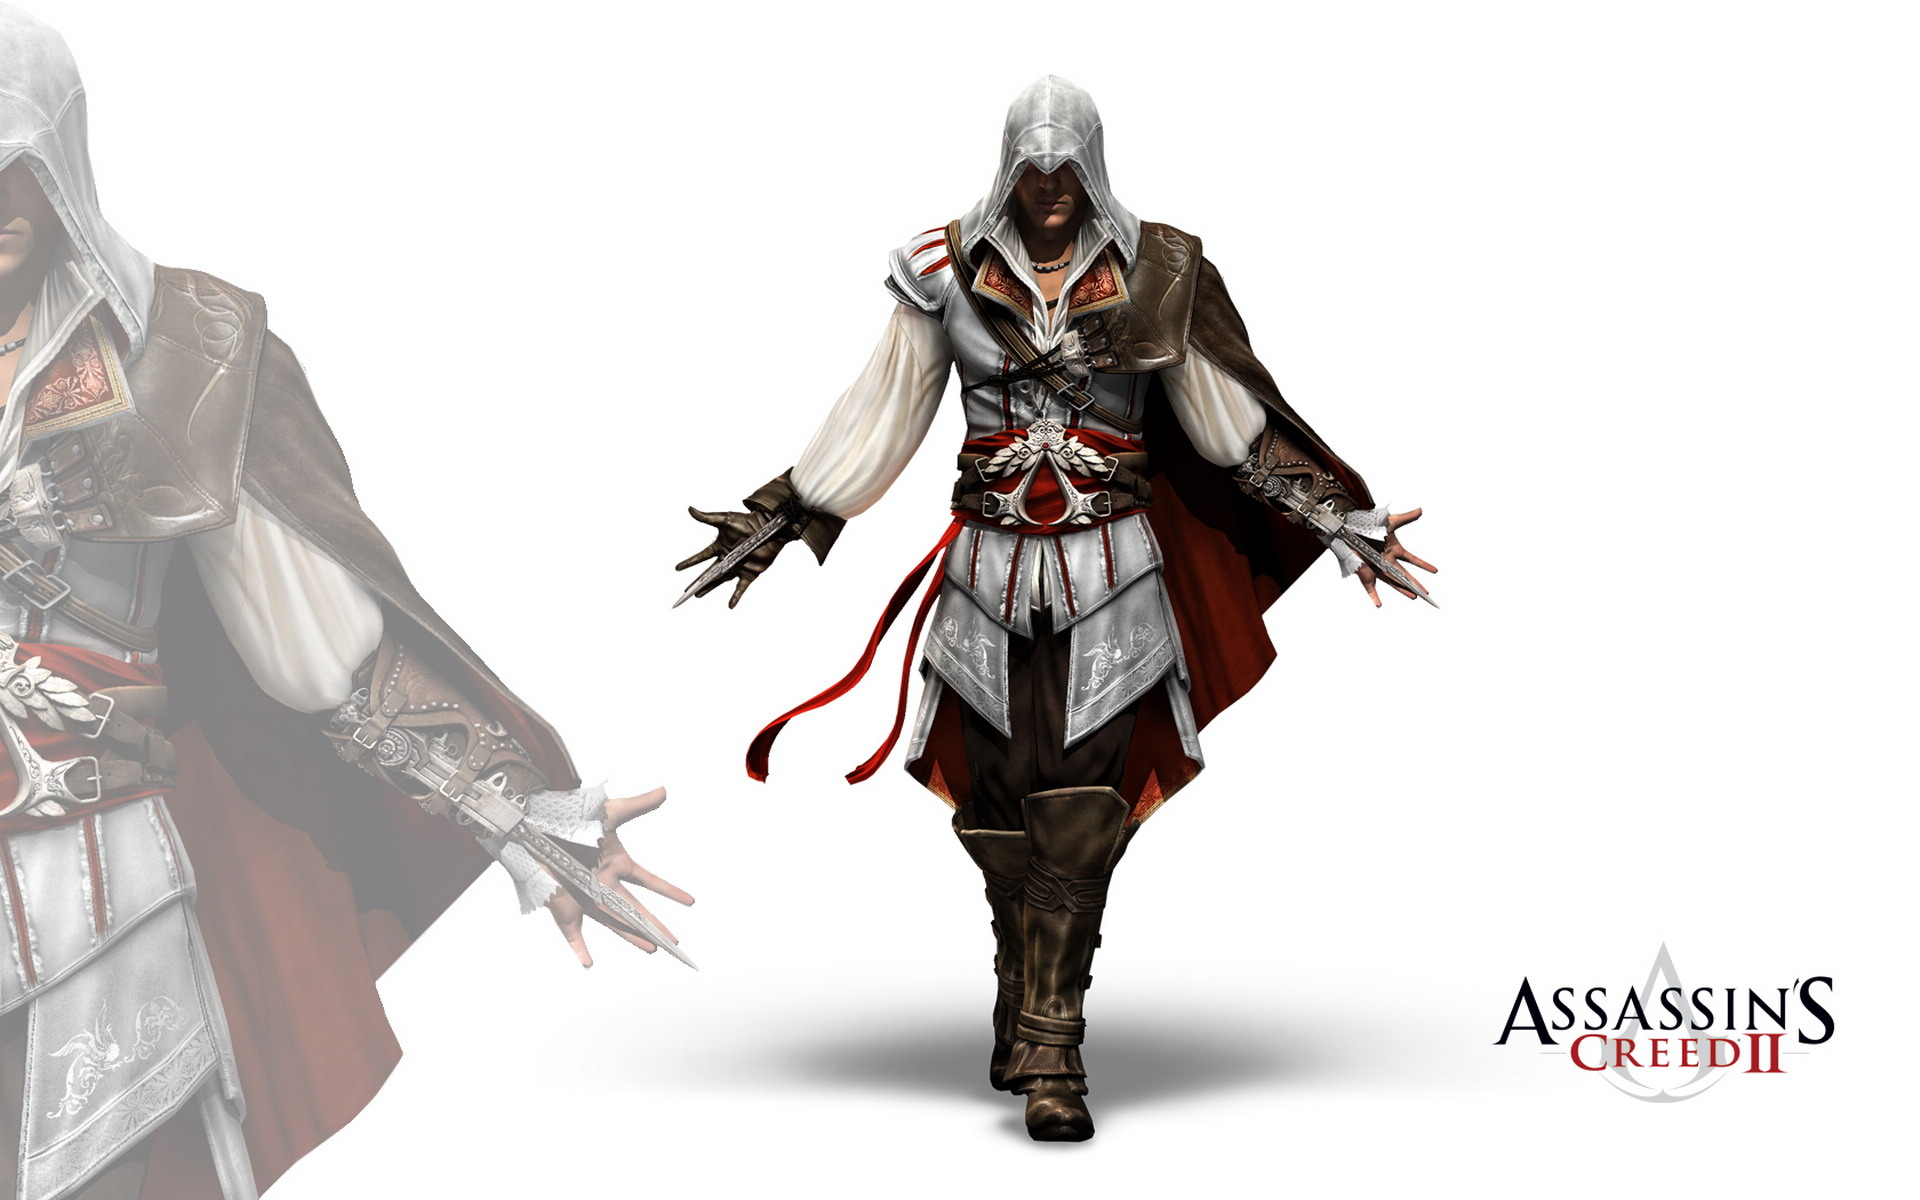 Assassins Creed II Wallpaper  by CrossDominatriX on DeviantArt 1920x1200